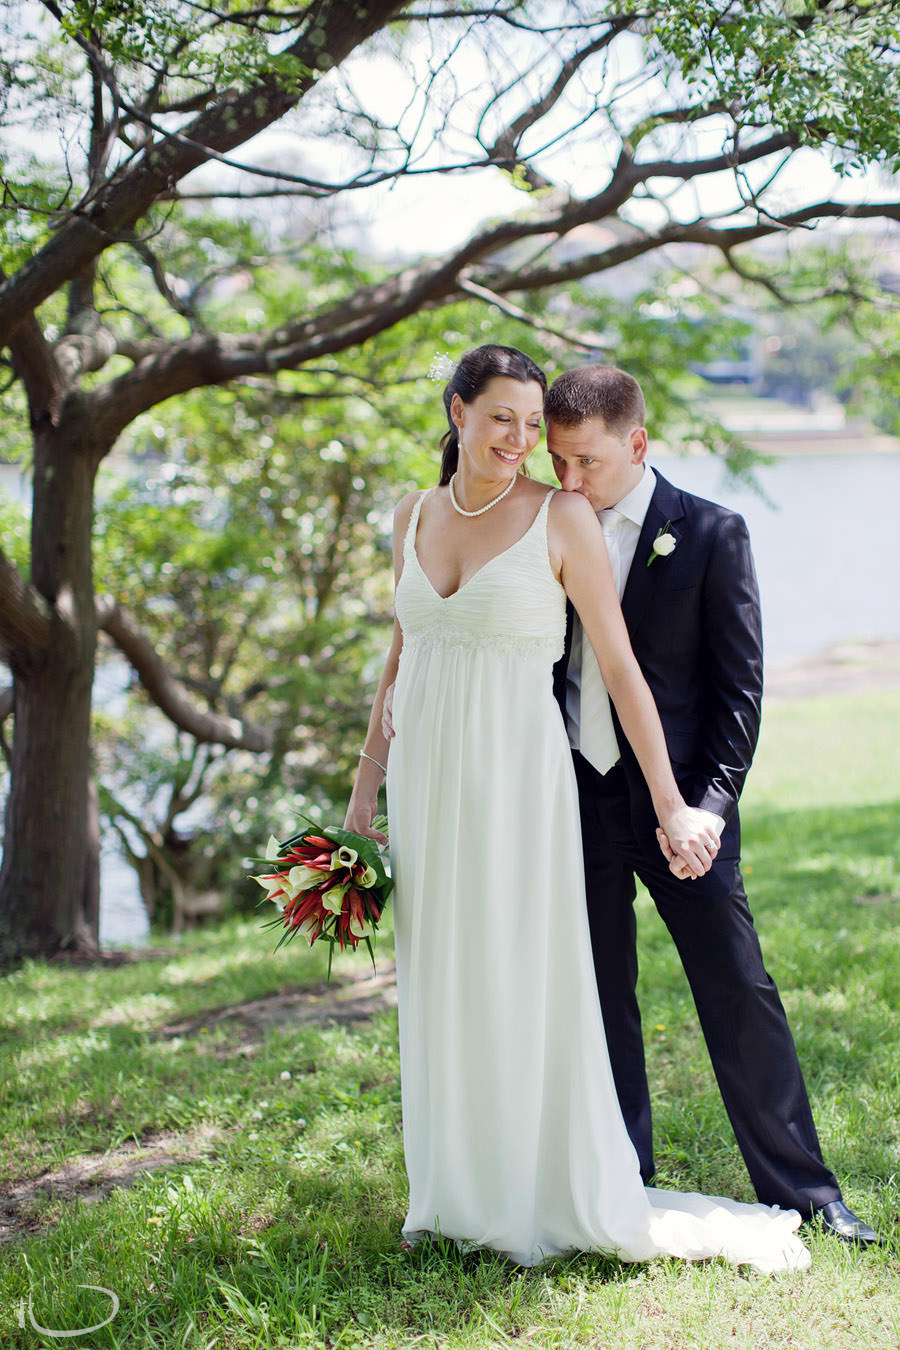 Sydney Wedding Photographer: Bride & Groom